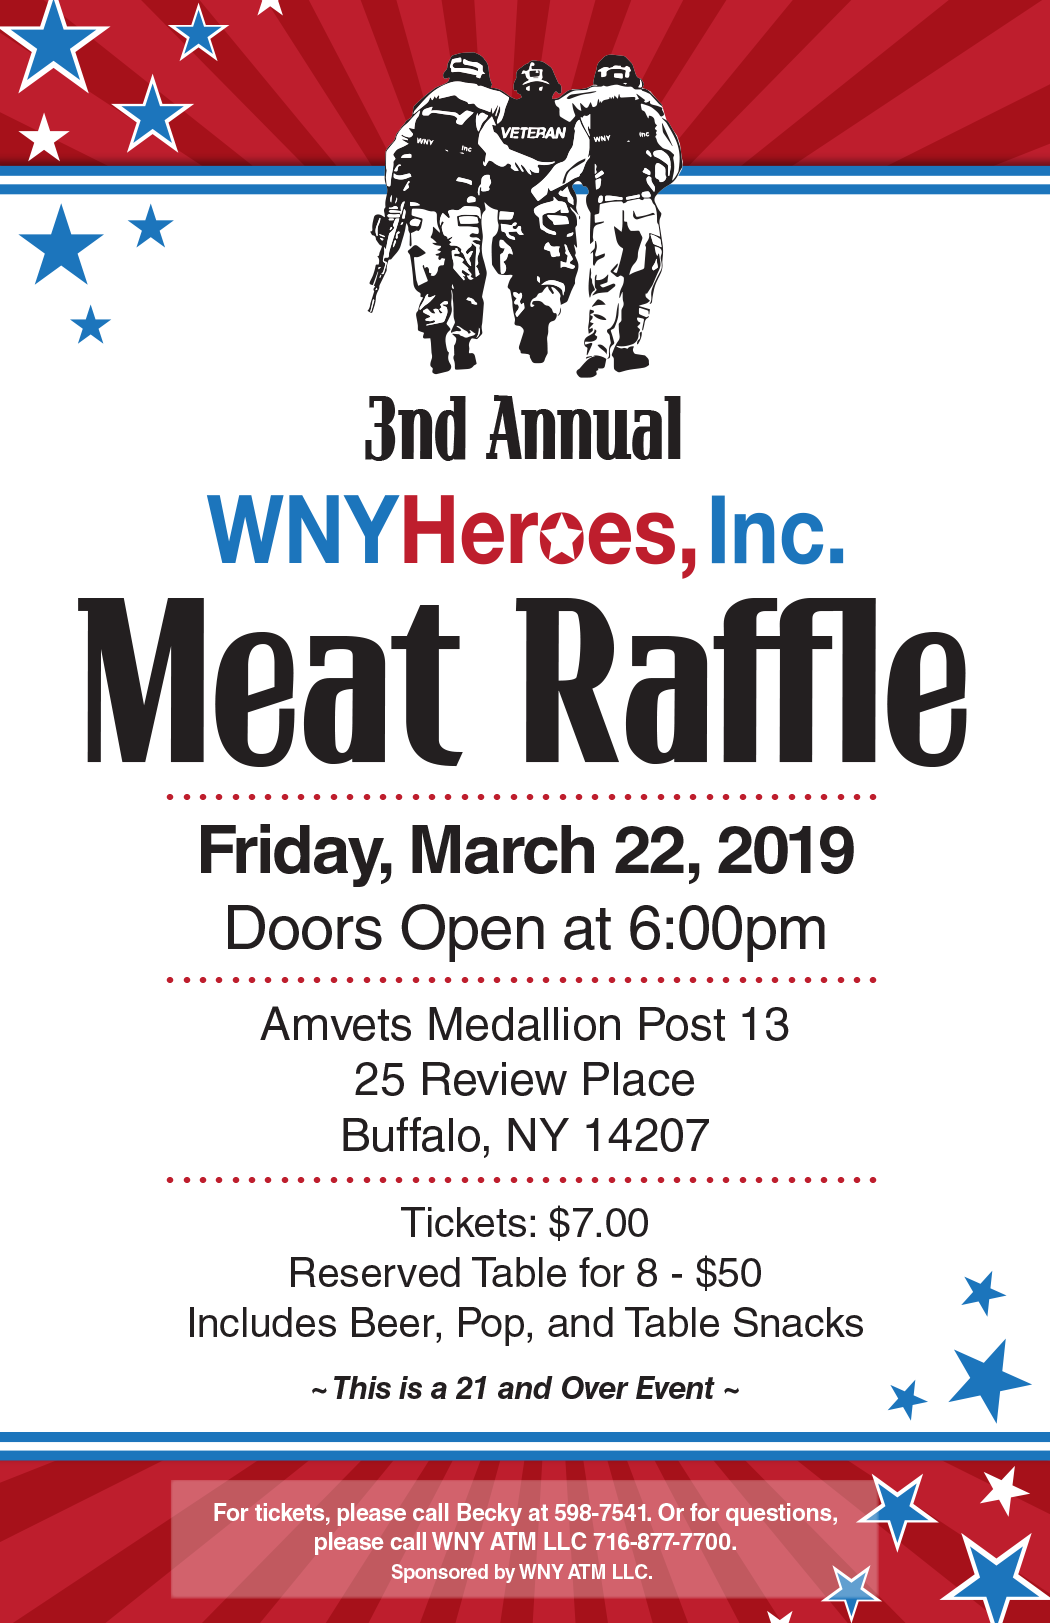 WNY heroes meat raffle posrer 11x17 1_17_19 (end).png